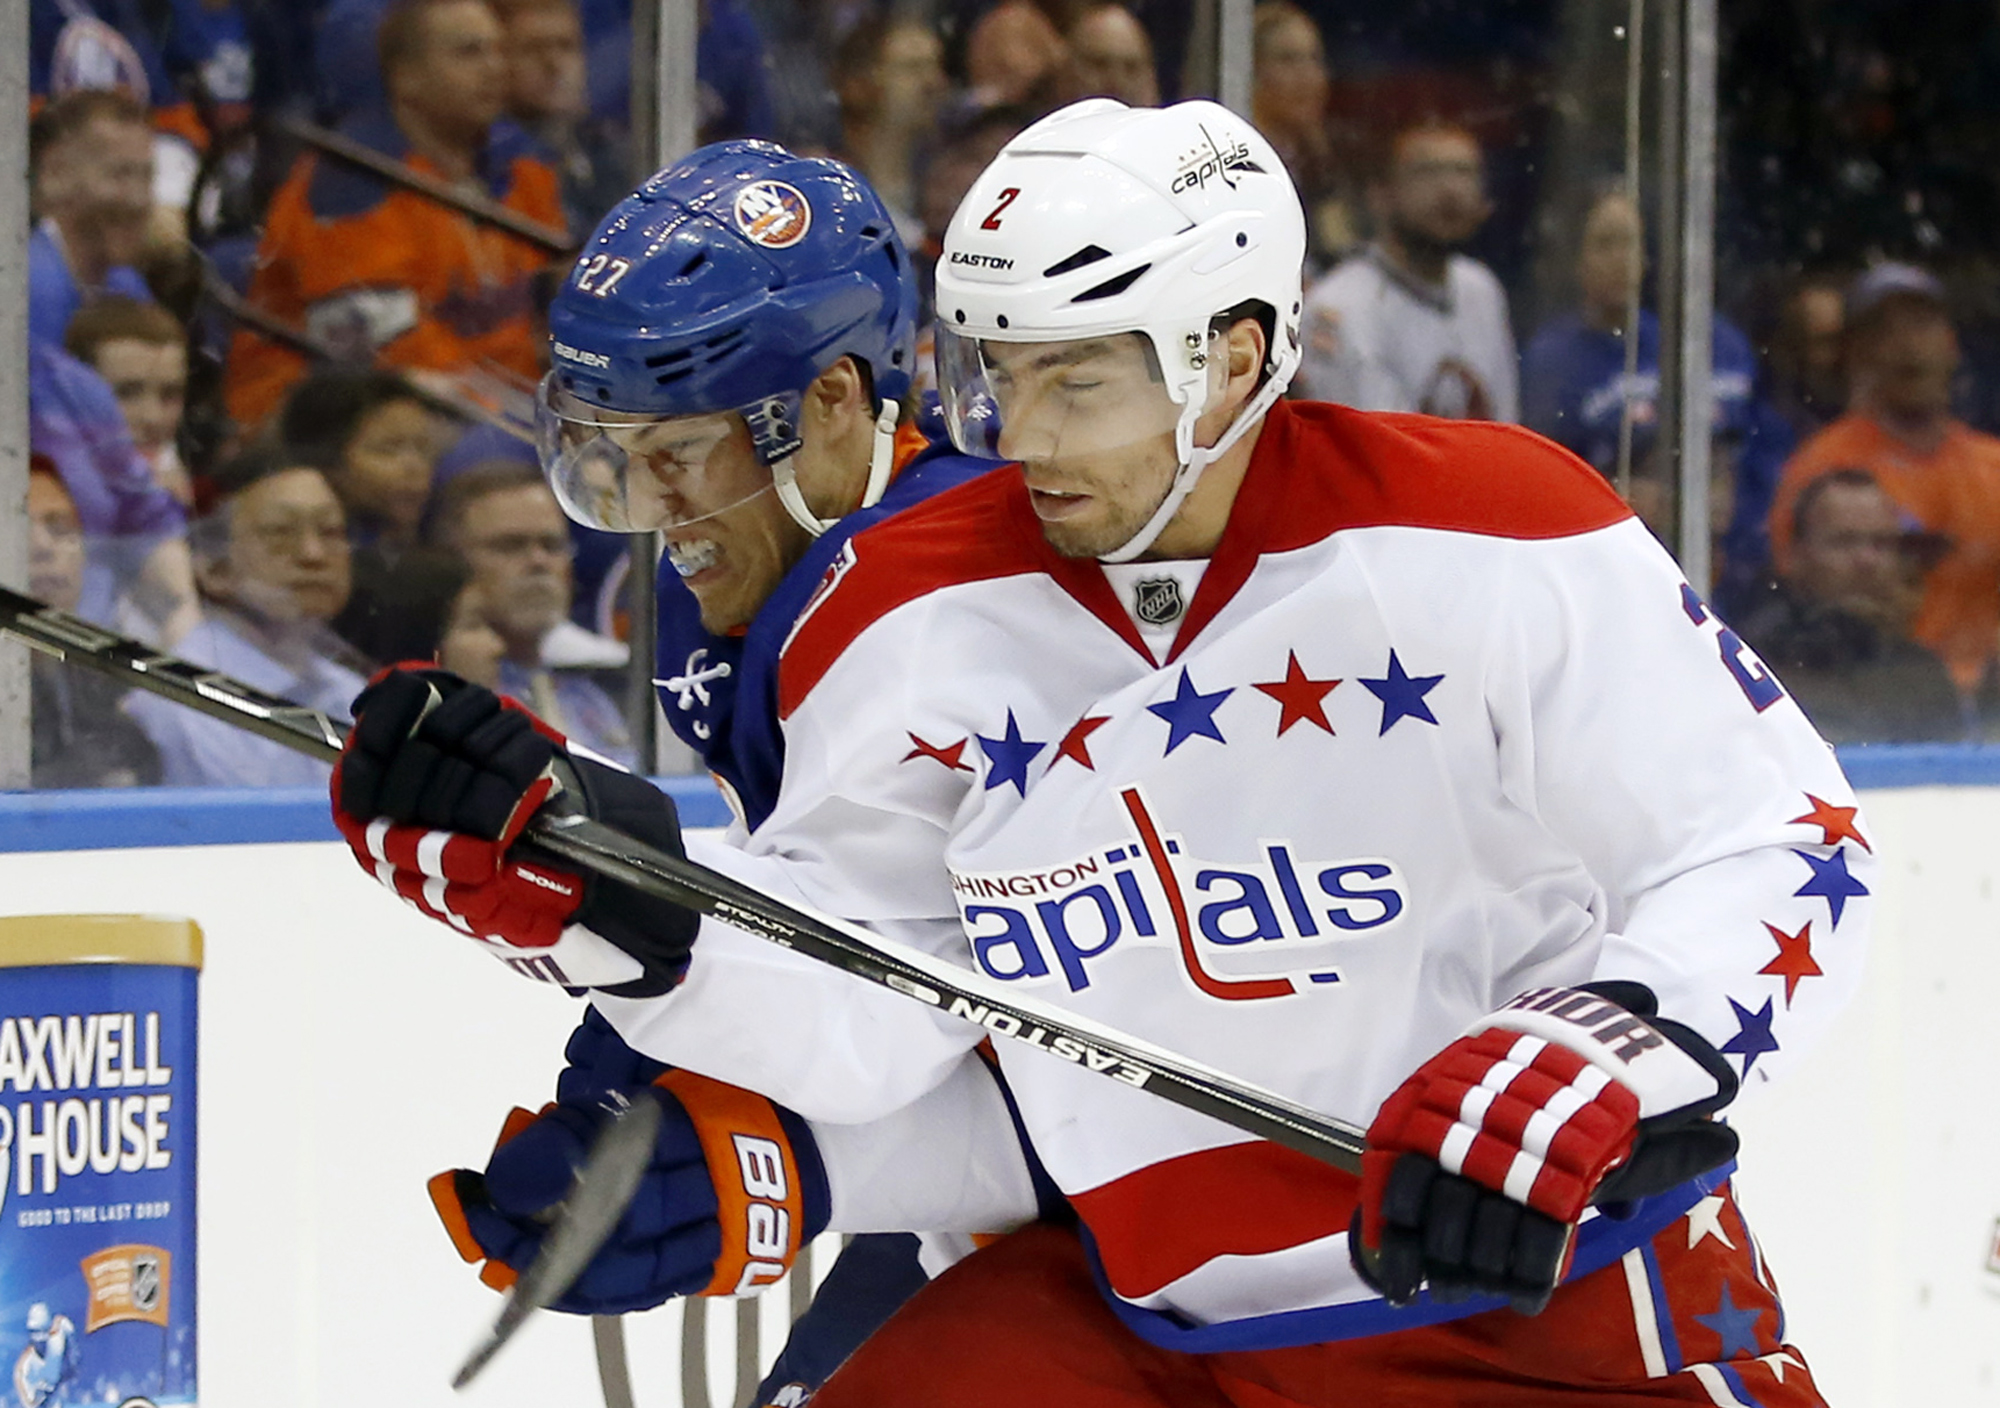 FILE - In this April 21, 2015, file photo, Washington Capitals defenseman Matt Niskanen (2) checks New York Islanders center Anders Lee (27) during Game 4 of a first-round NHL Stanley Cup hockey playoff series in Uniondale, N.Y. Count Niskanen among those